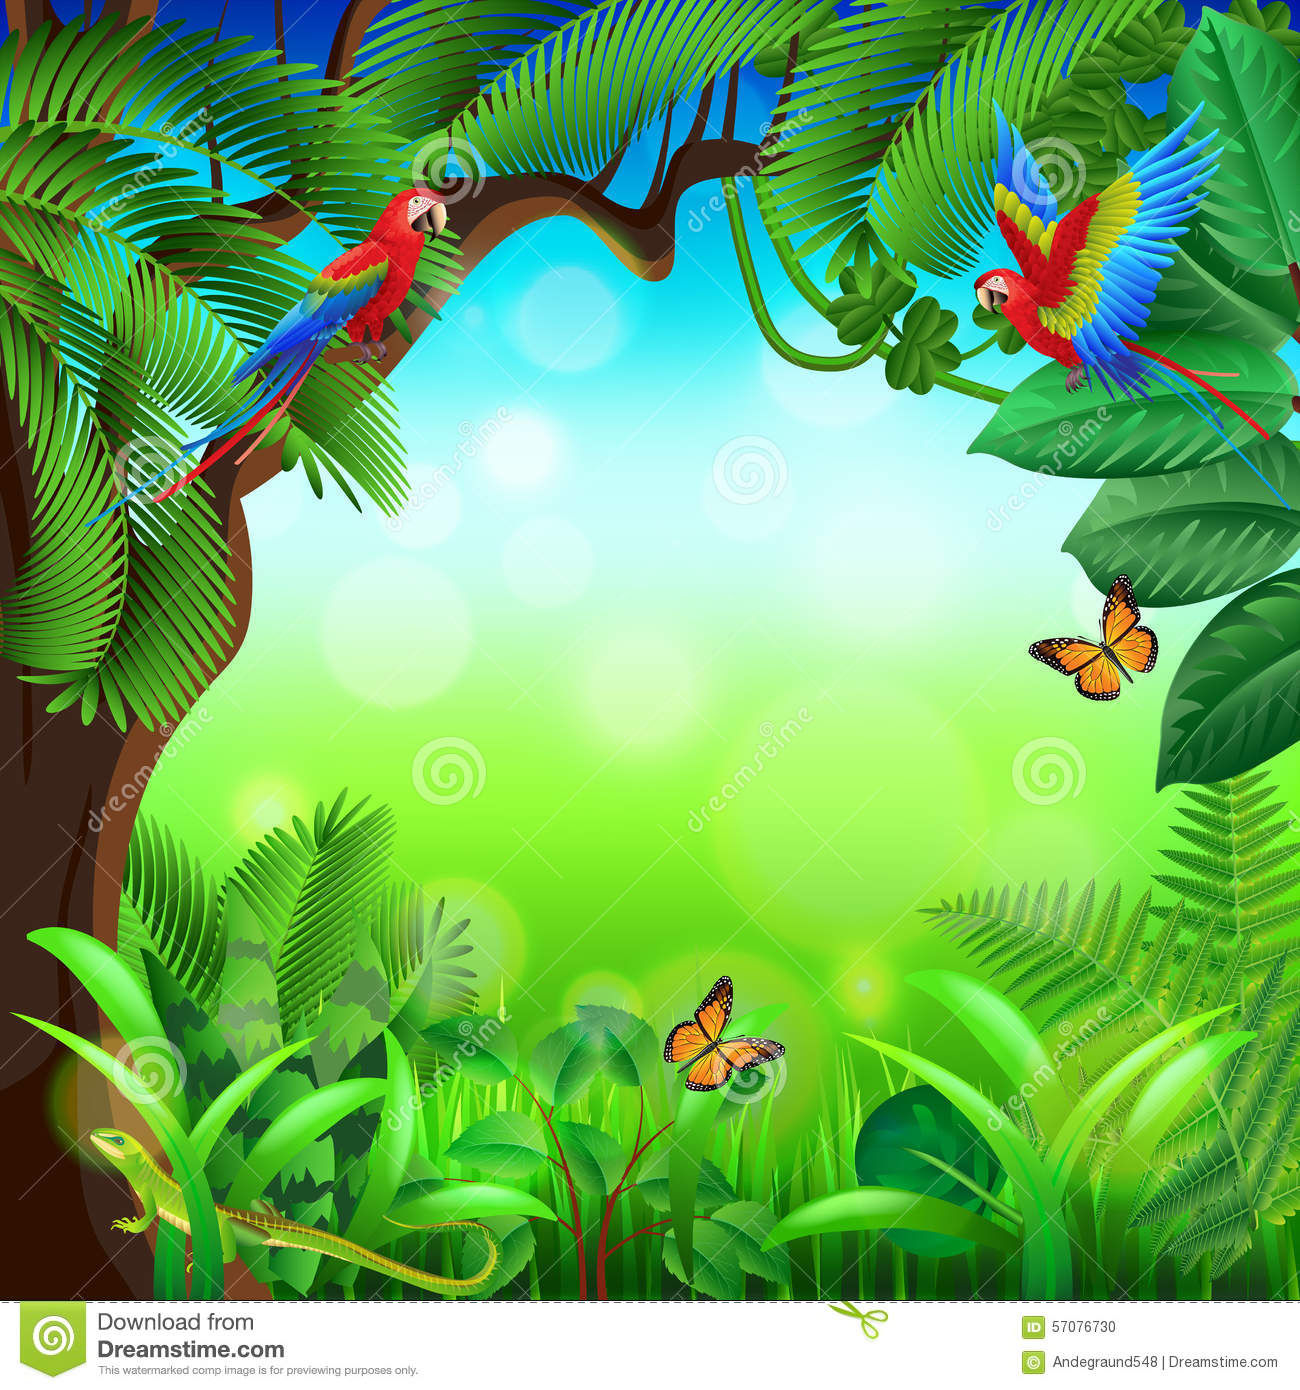 Free 3d Dinosaur Wallpaper Tropical Jungle With Animals Vector Background Stock